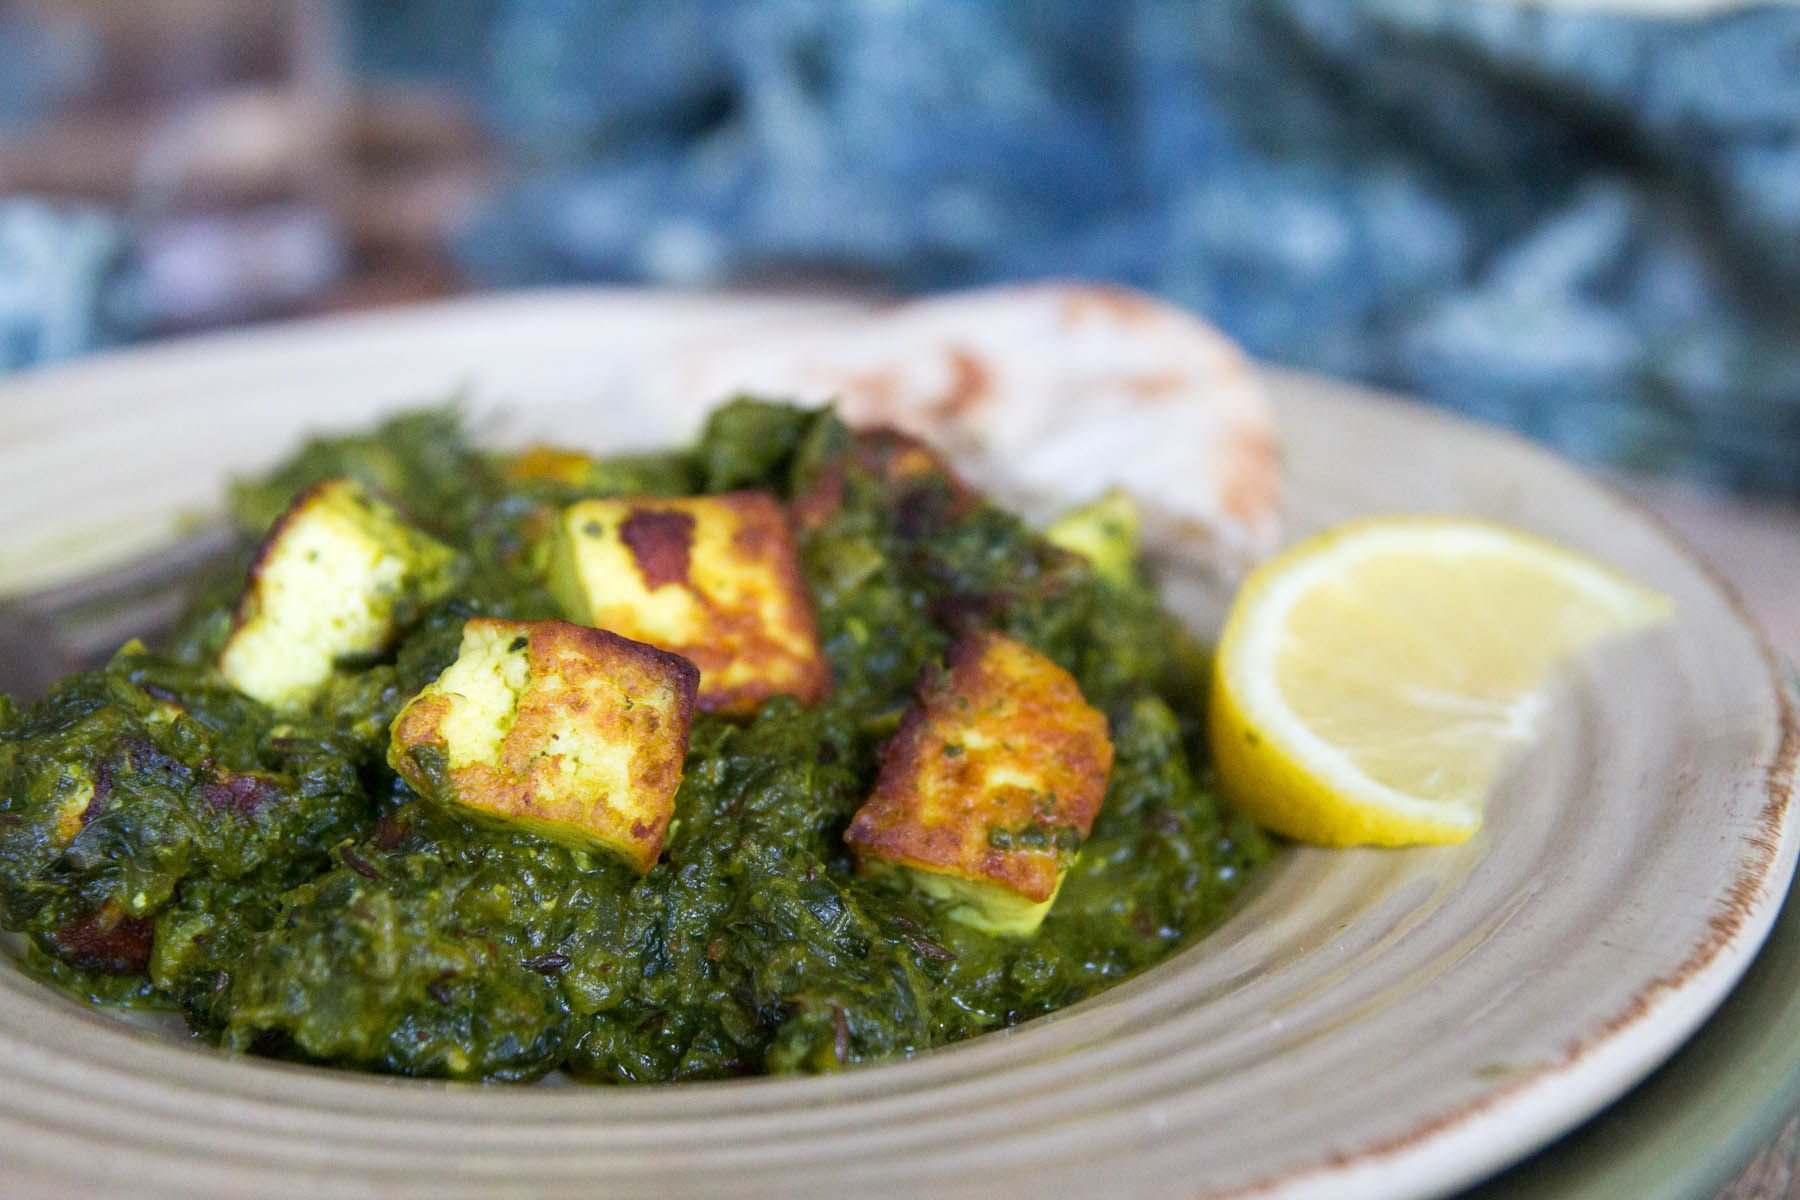 Spinach and cheese curry palak paneer indiaphile spinach and cheese curry palak paneer forumfinder Gallery